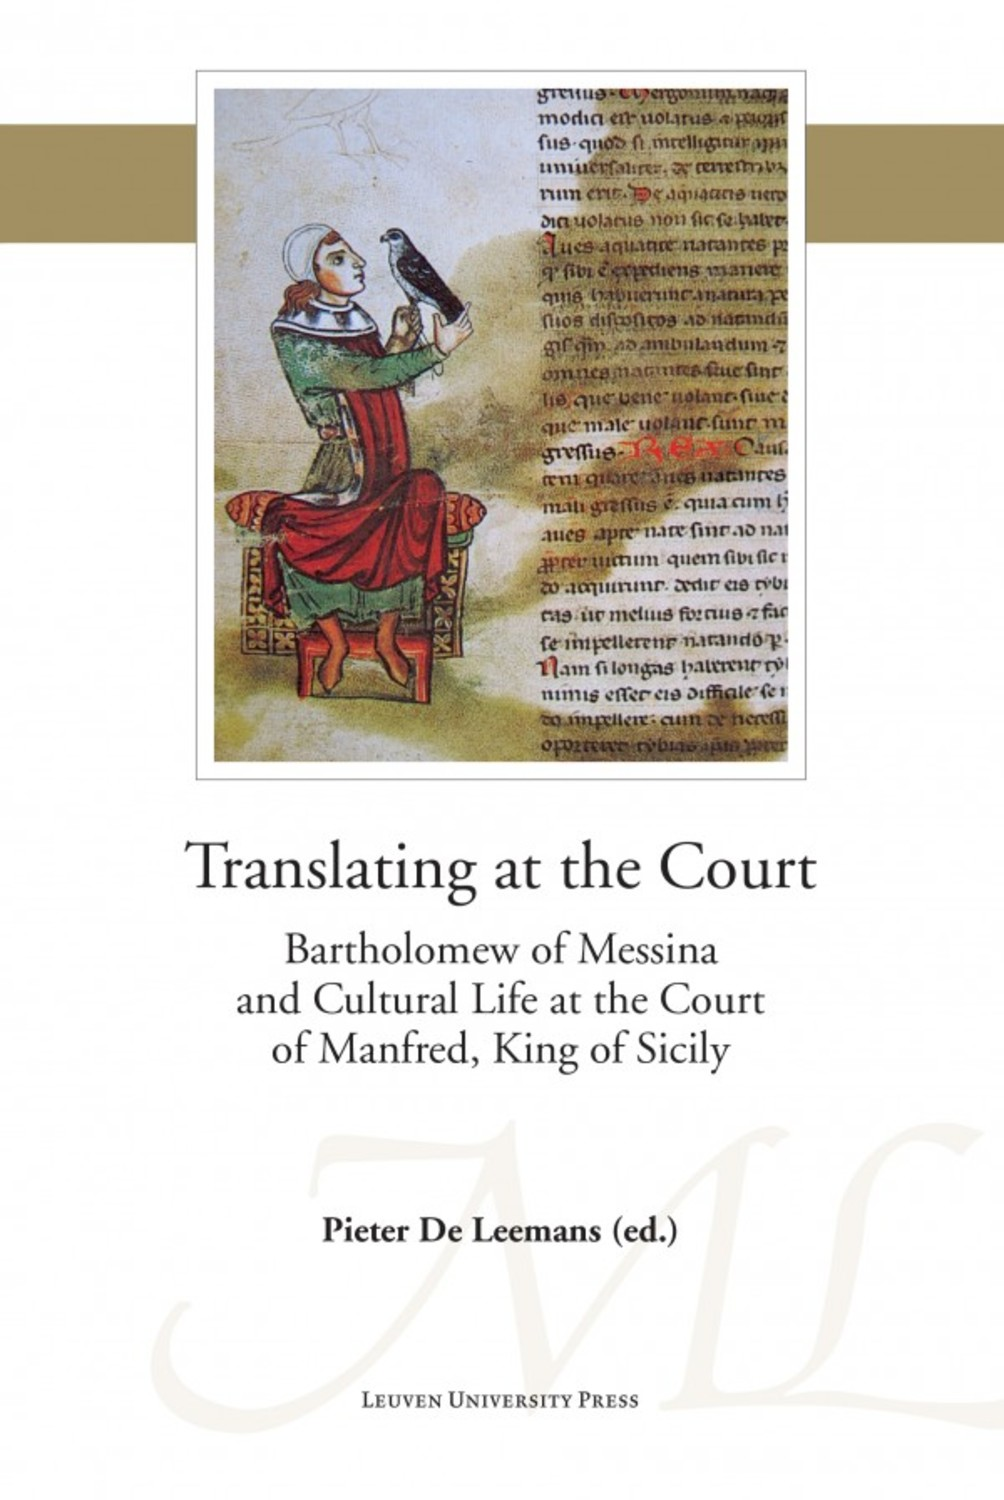 Translating at the Court